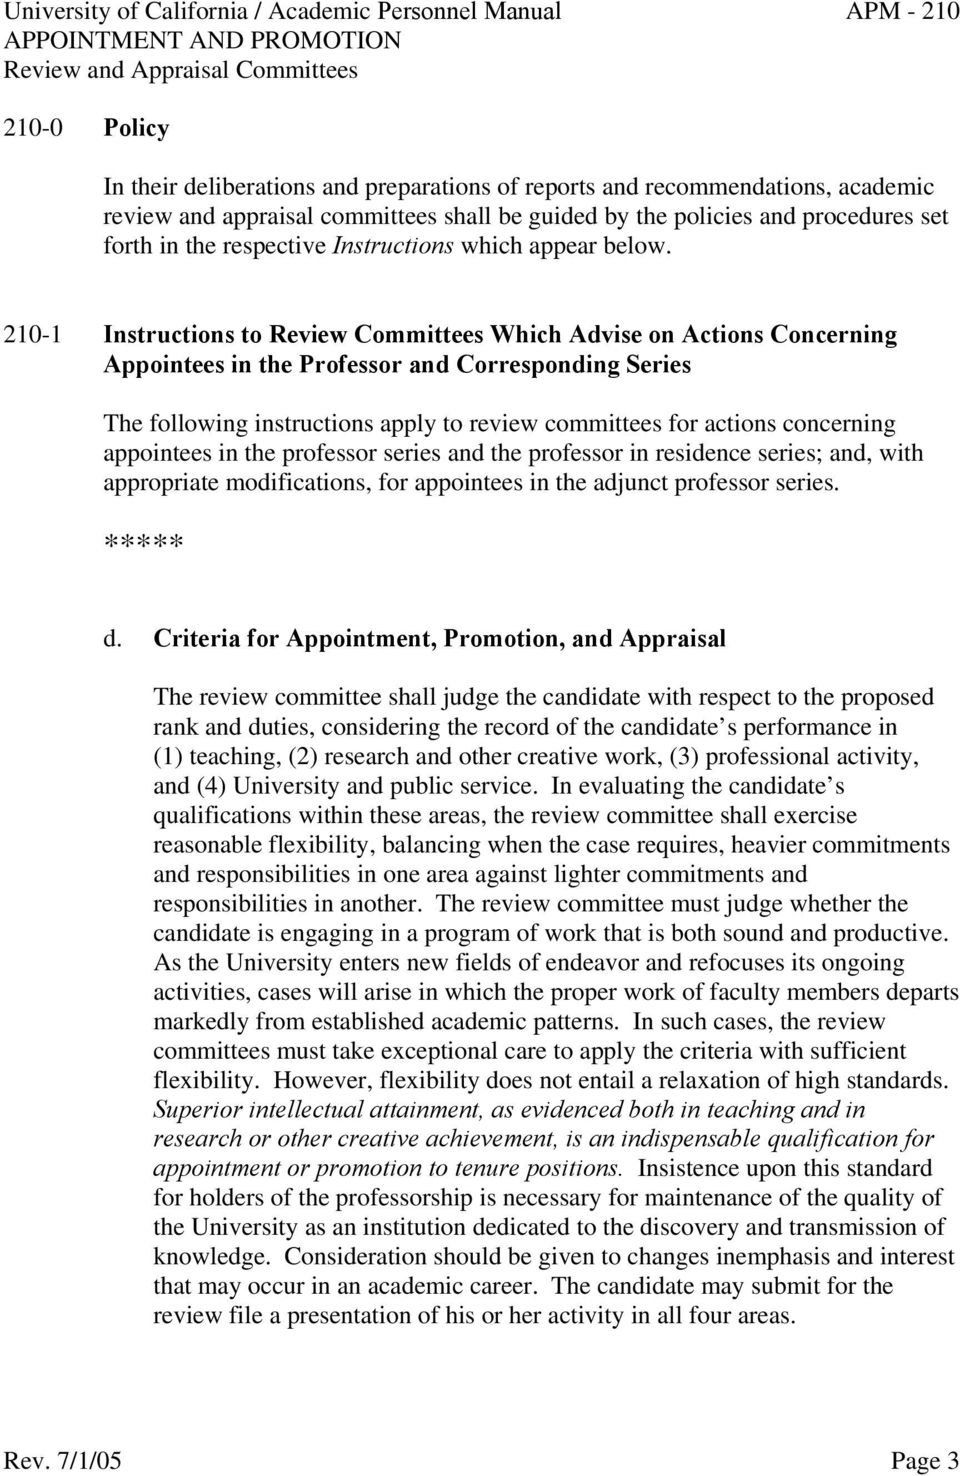 210-1 Instructions to Review Committees Which Advise on Actions Concerning Appointees in the Professor and Corresponding Series The following instructions apply to review committees for actions